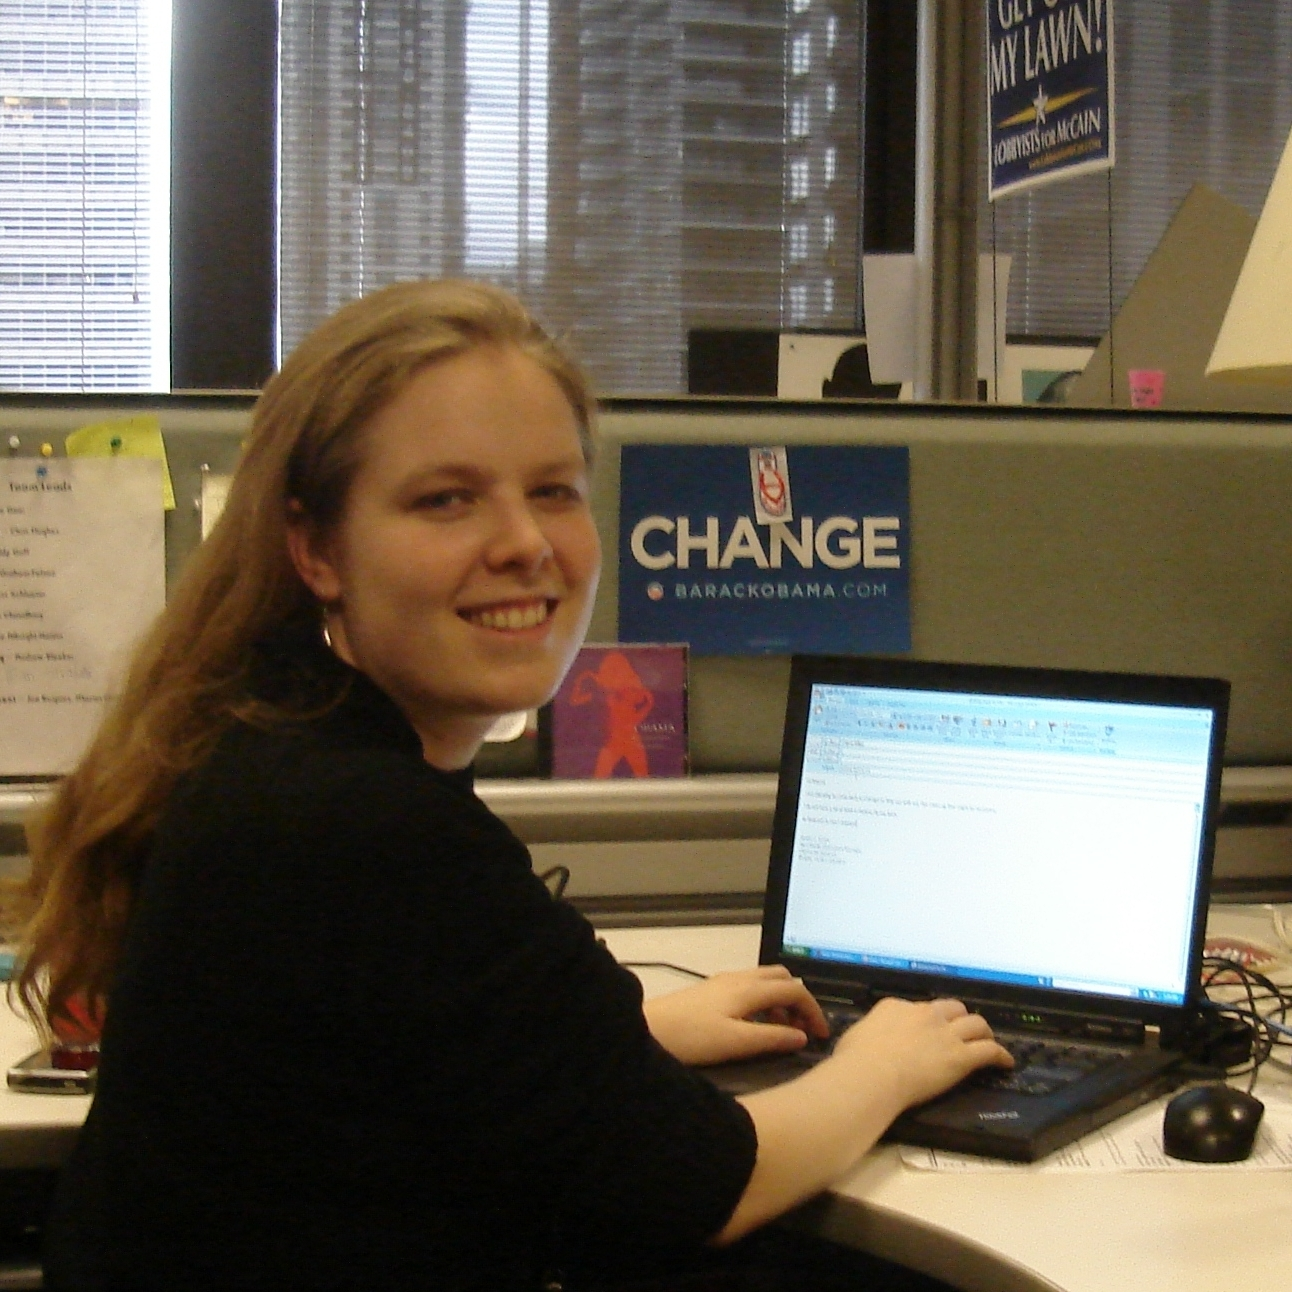 At Obama campaign HQ typing email as New Media Operations Manager (Chicago, 2008)